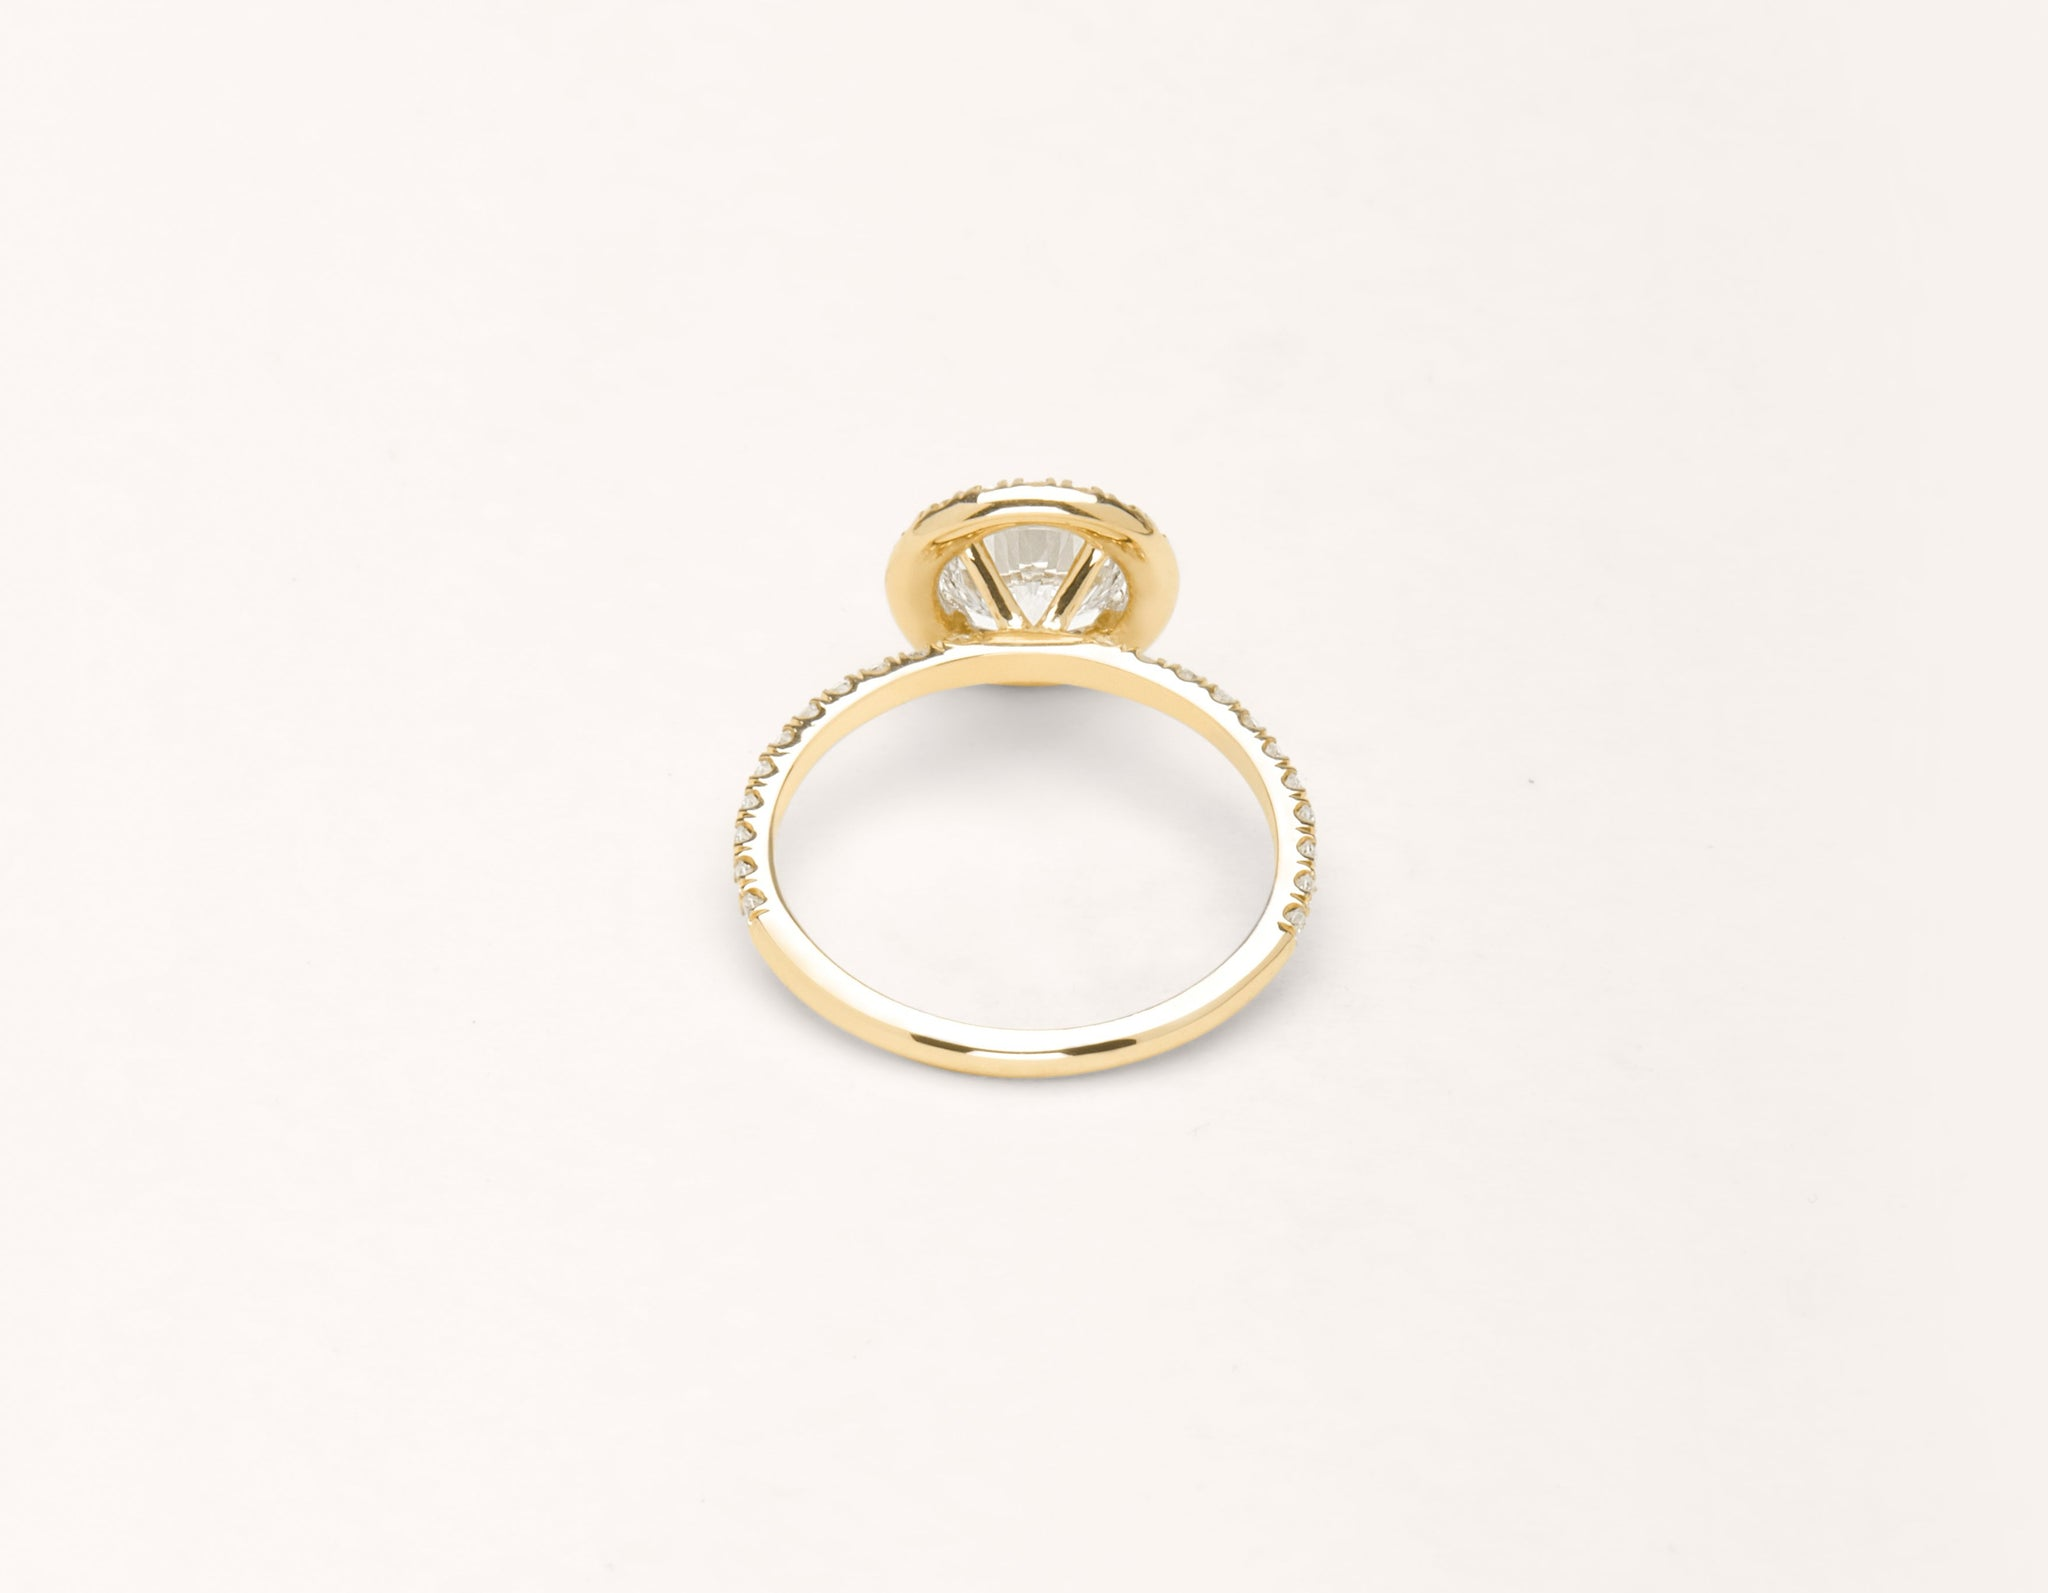 Vrai & Oro 18k solid yellow gold Diamond engagement ring The Halo pave simple classic band